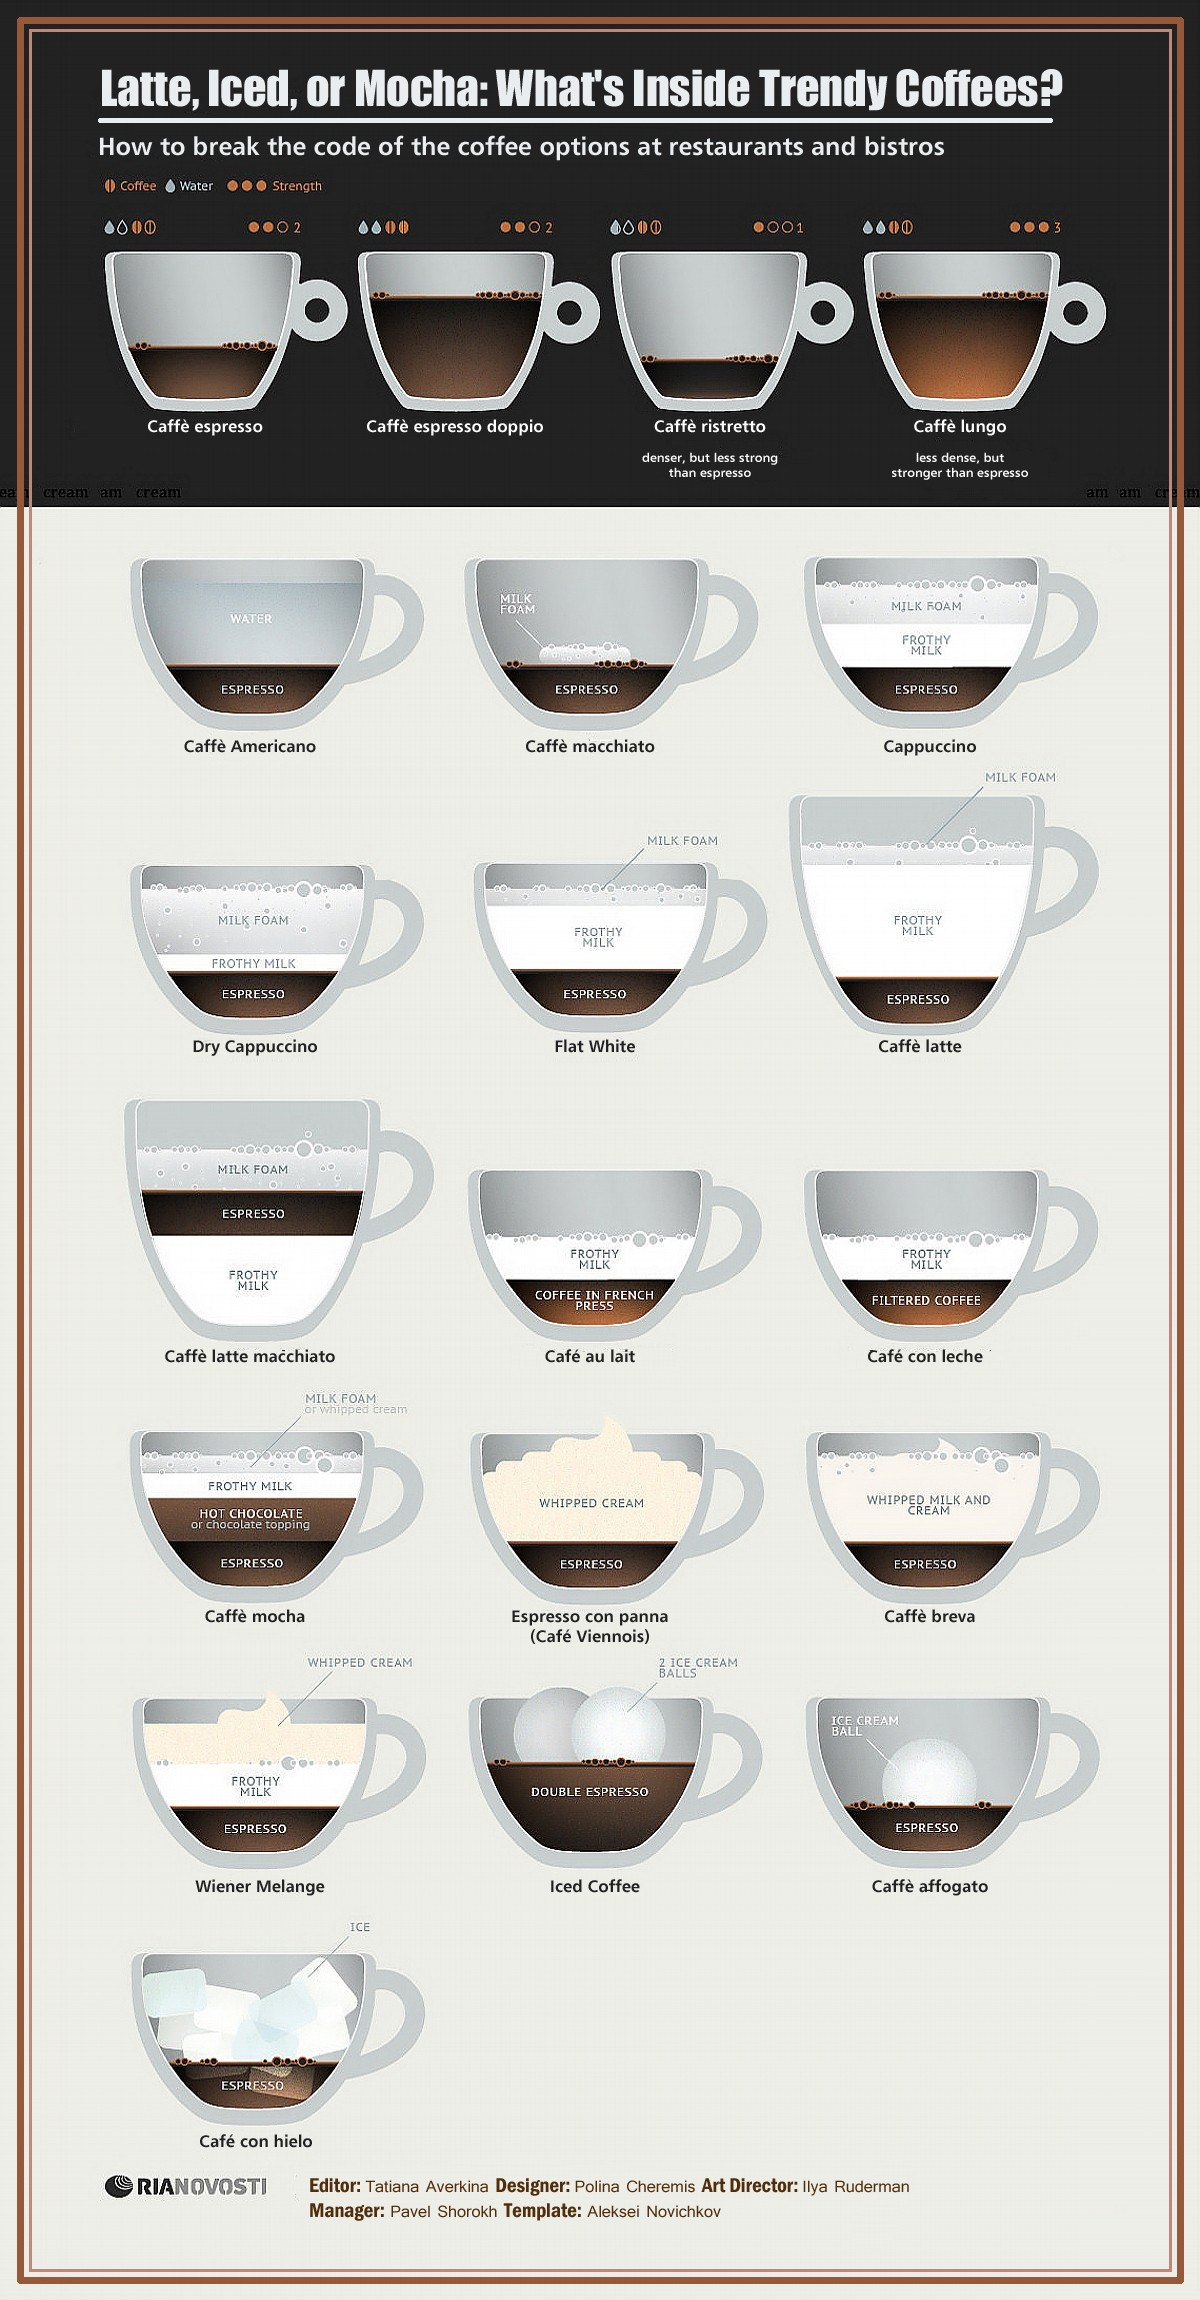 00 RIA-Novosti Infographics. Latte, Iced, or Mocha. What's Inside Trendy Coffees. 2013